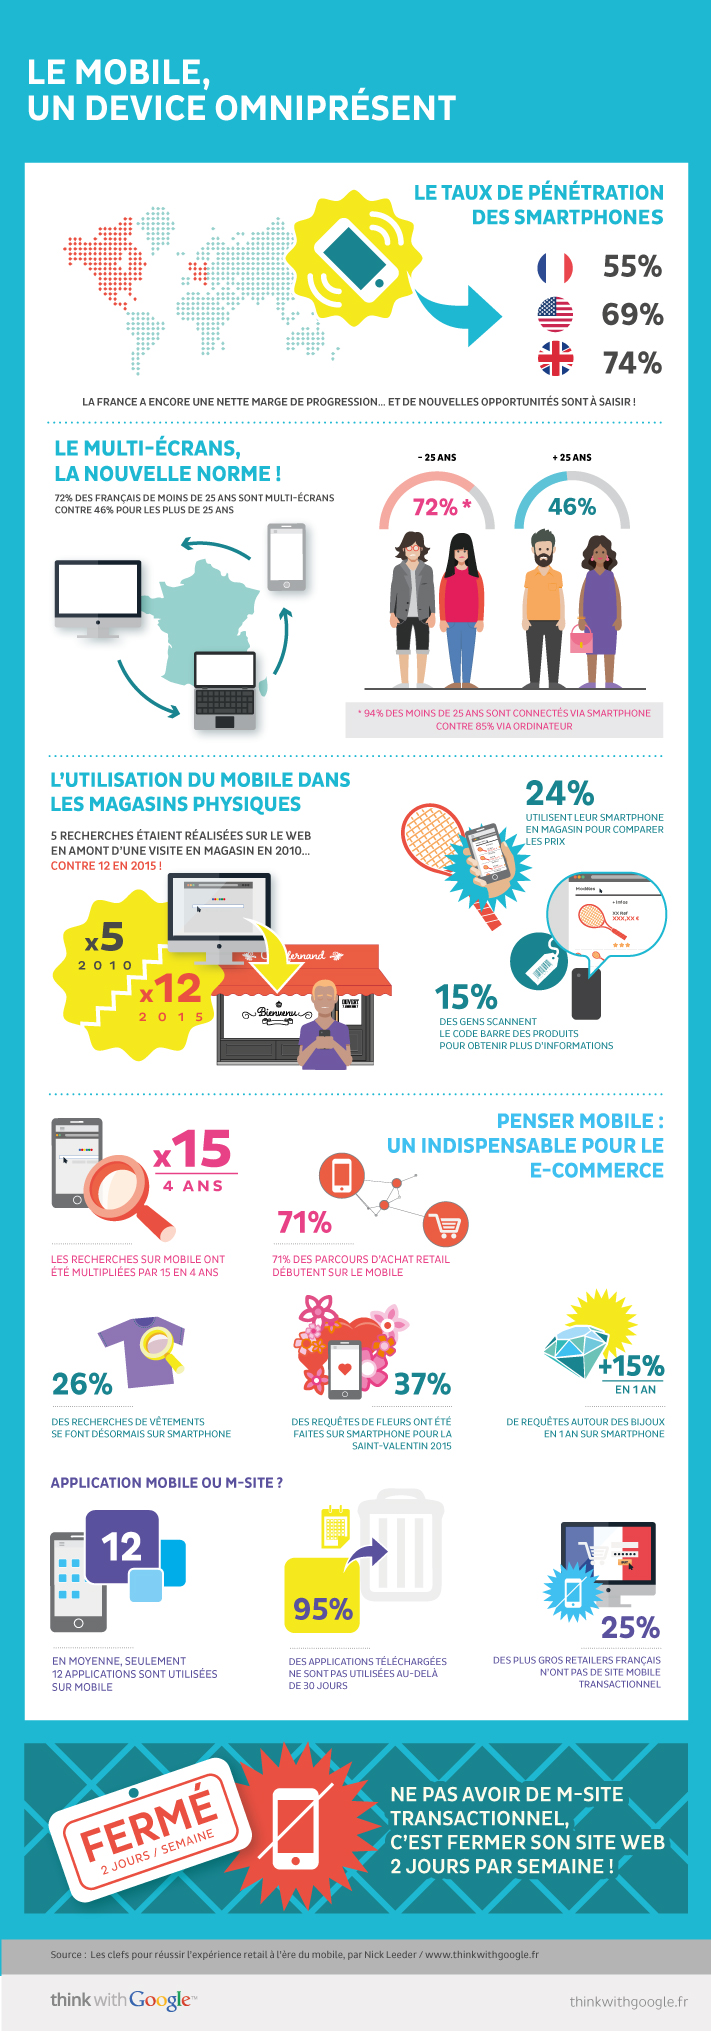 infographie-mobile-ecommerce-google